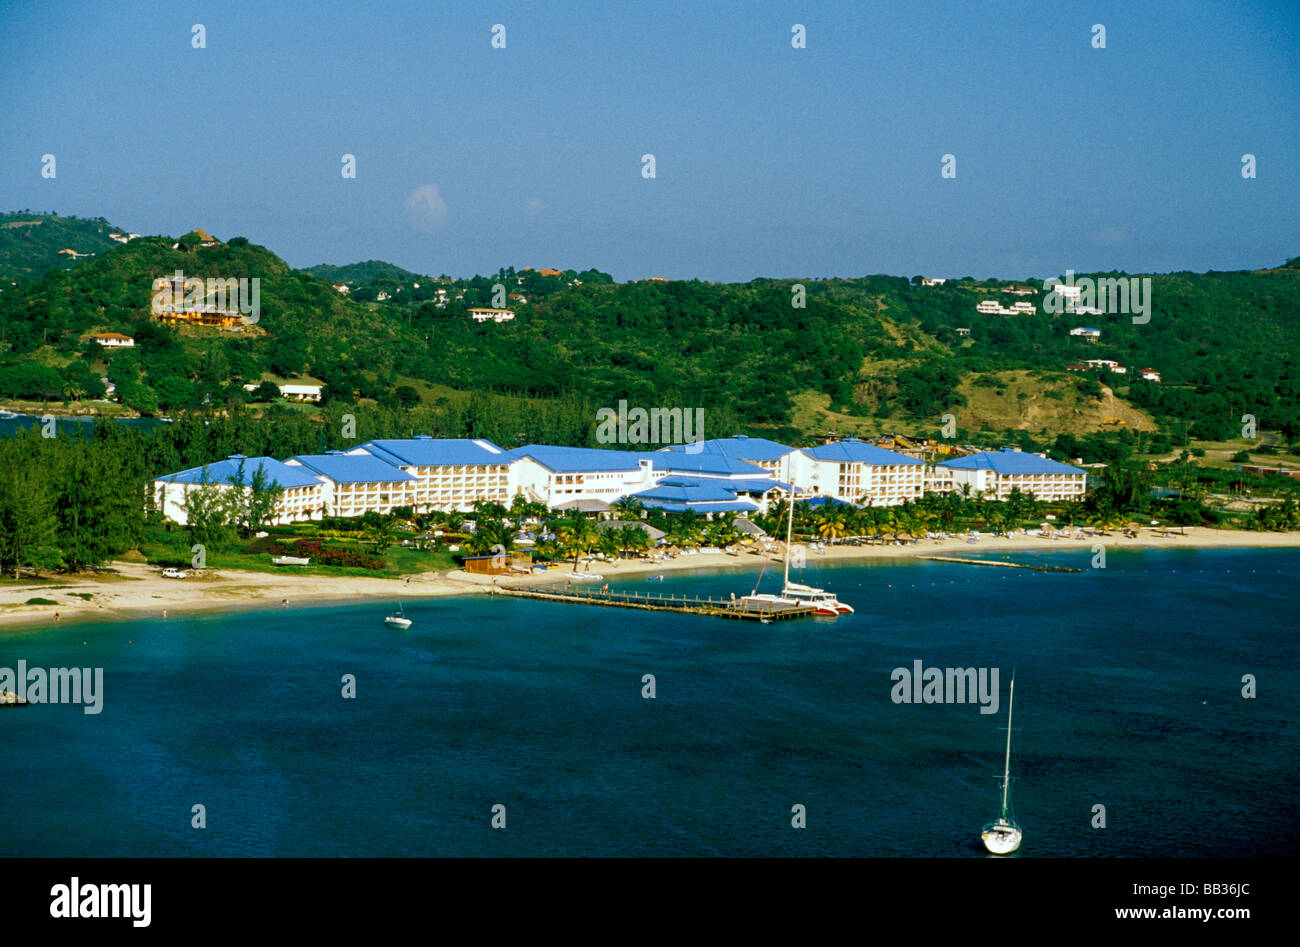 Rodney Bay Stock Photos & Rodney Bay Stock Images - Alamy